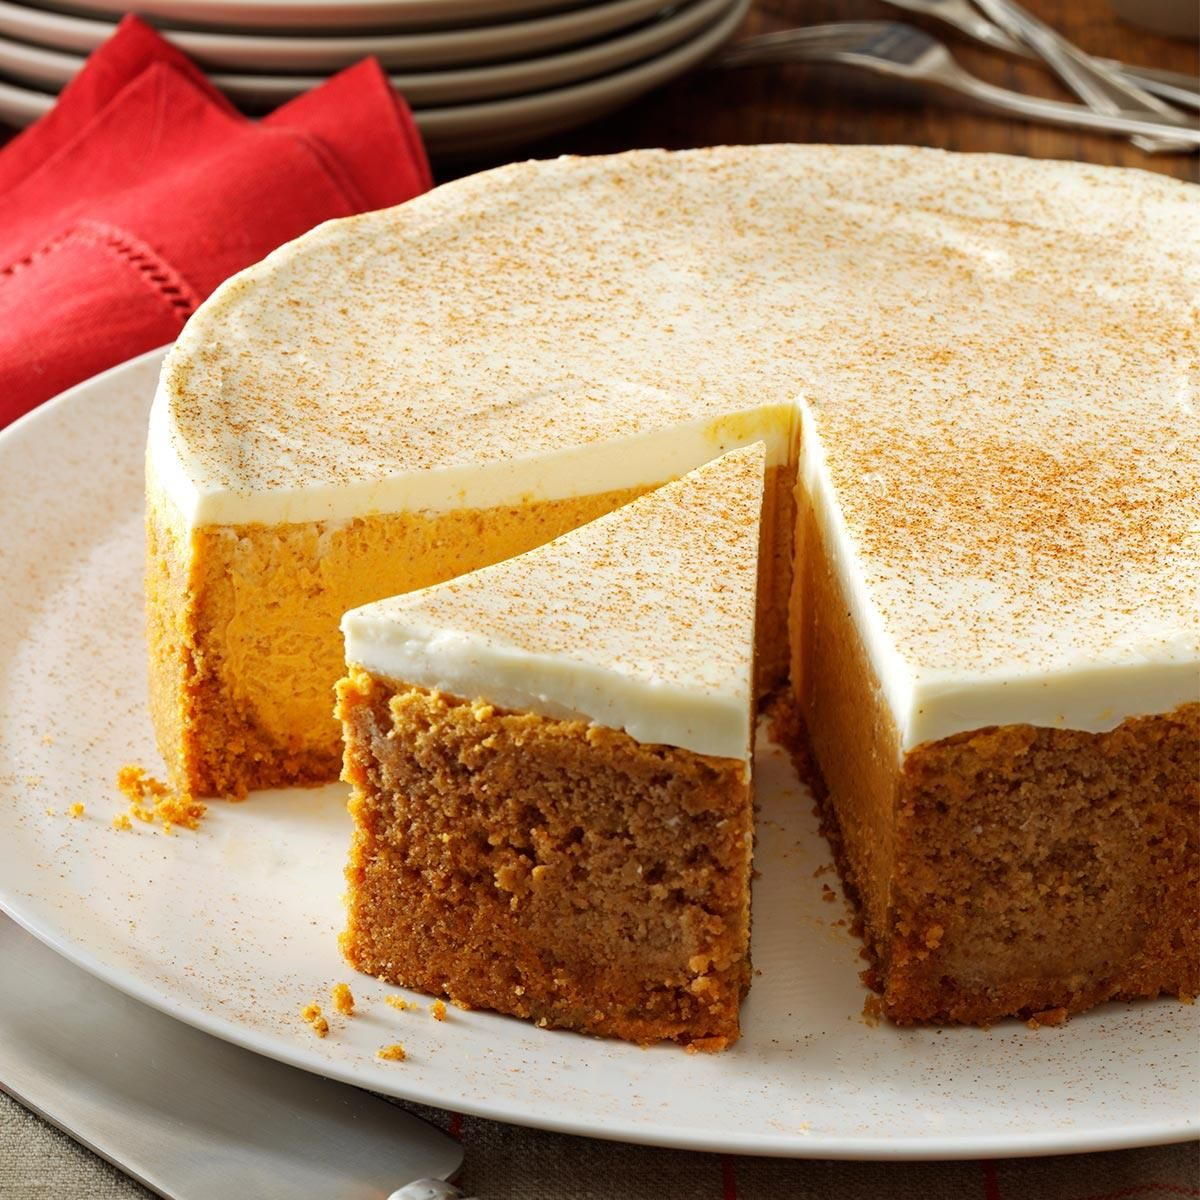 Pumpkin Cheesecake With Sour Cream Topping Recipe Sour Cream Cheesecake Pumpkin Dessert Desserts